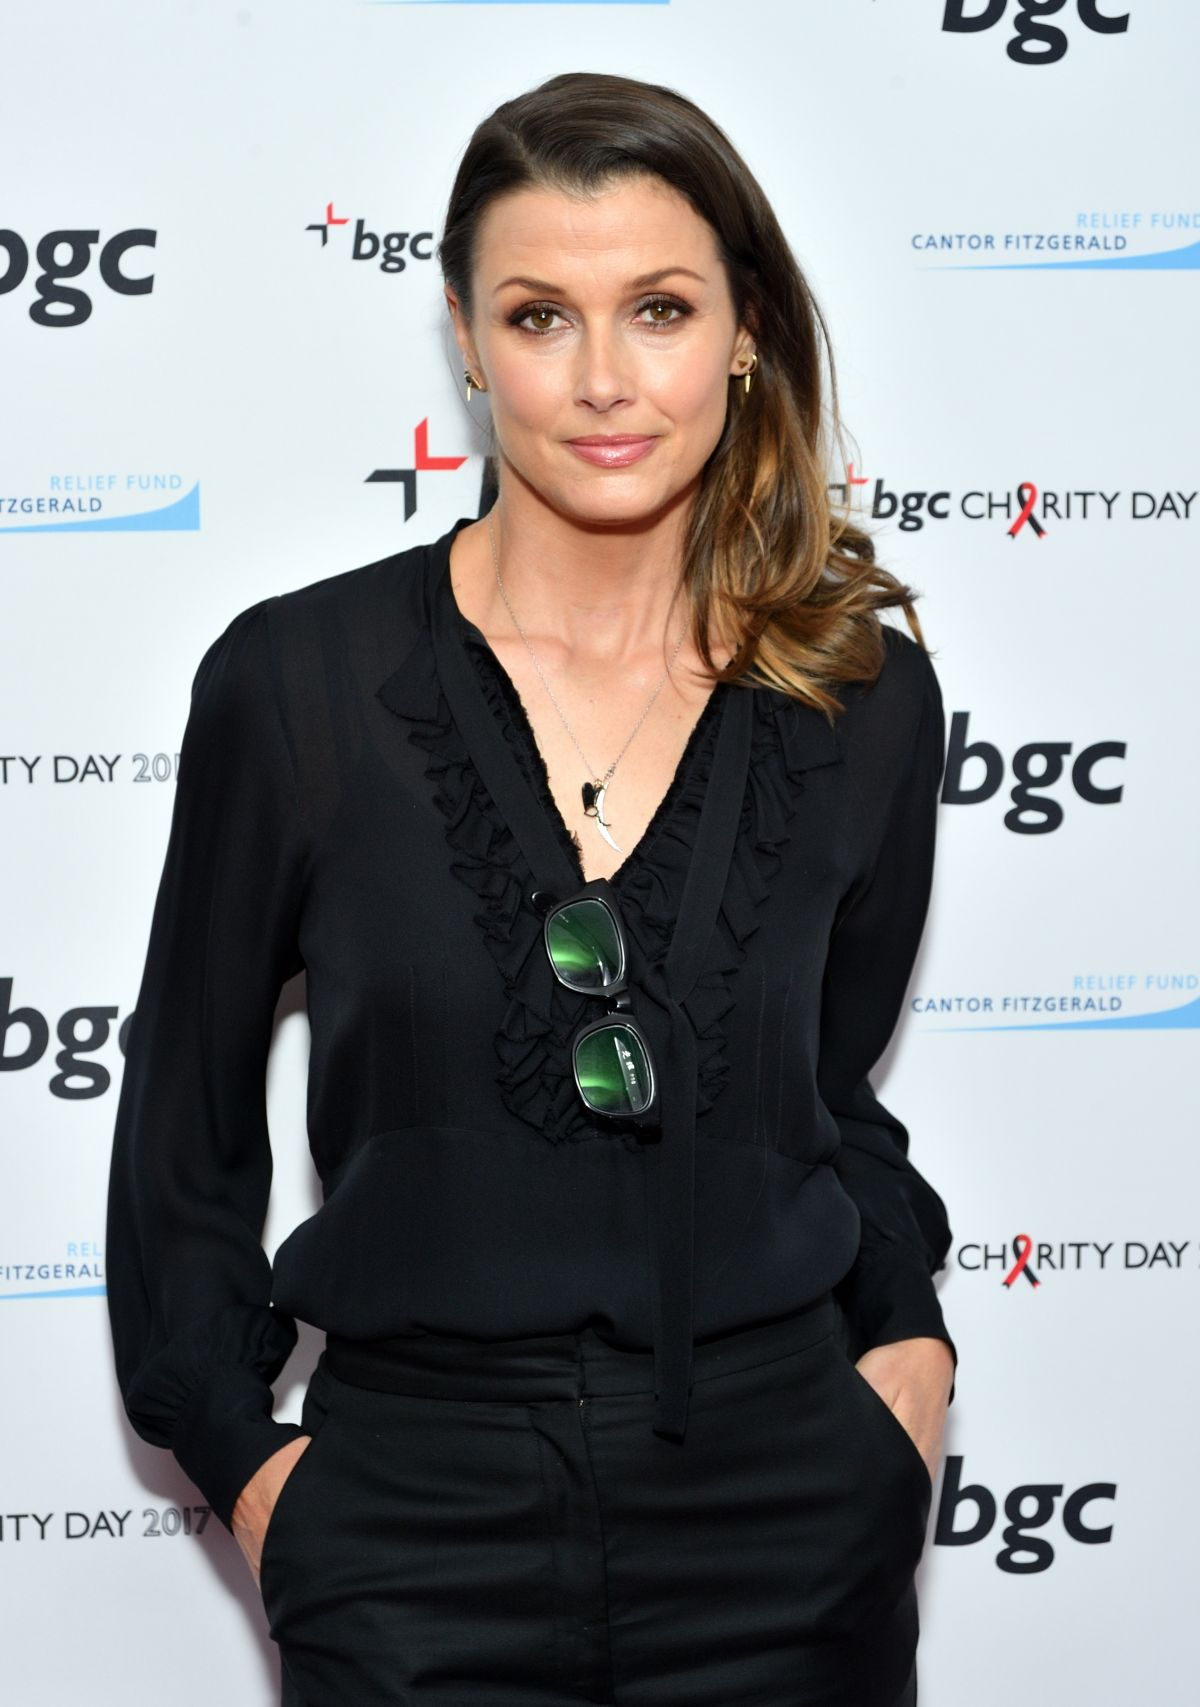 BRIDGET MOYNAHAN at BGC Partners Charity Day in New York 09/11/2017